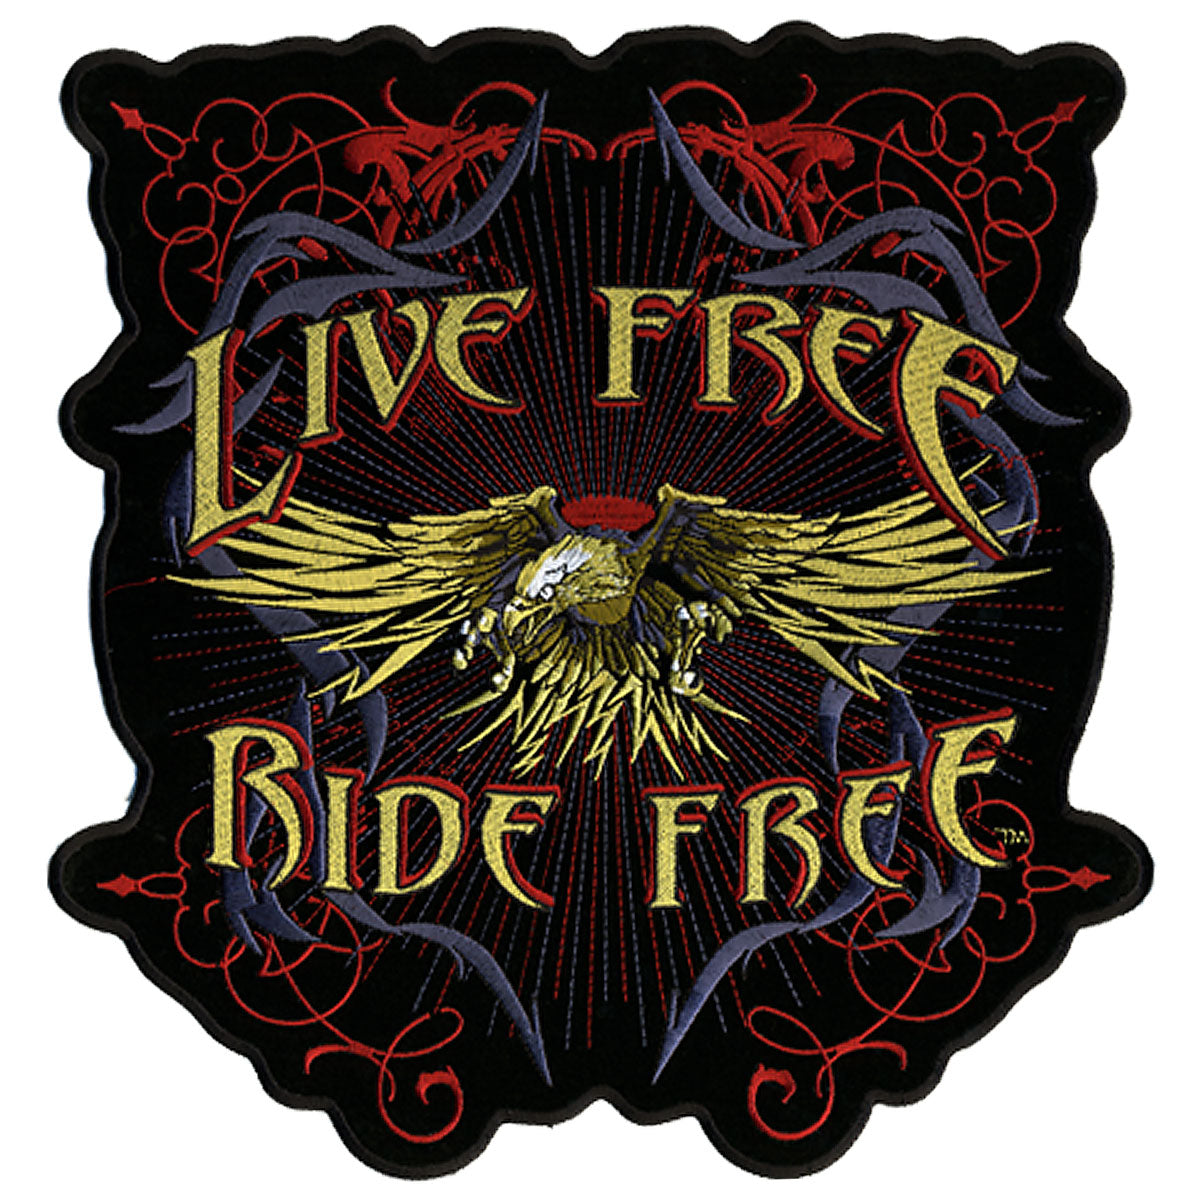 "Hot Leathers Evil Eagle Live Free 12"" x 12"" Patch"